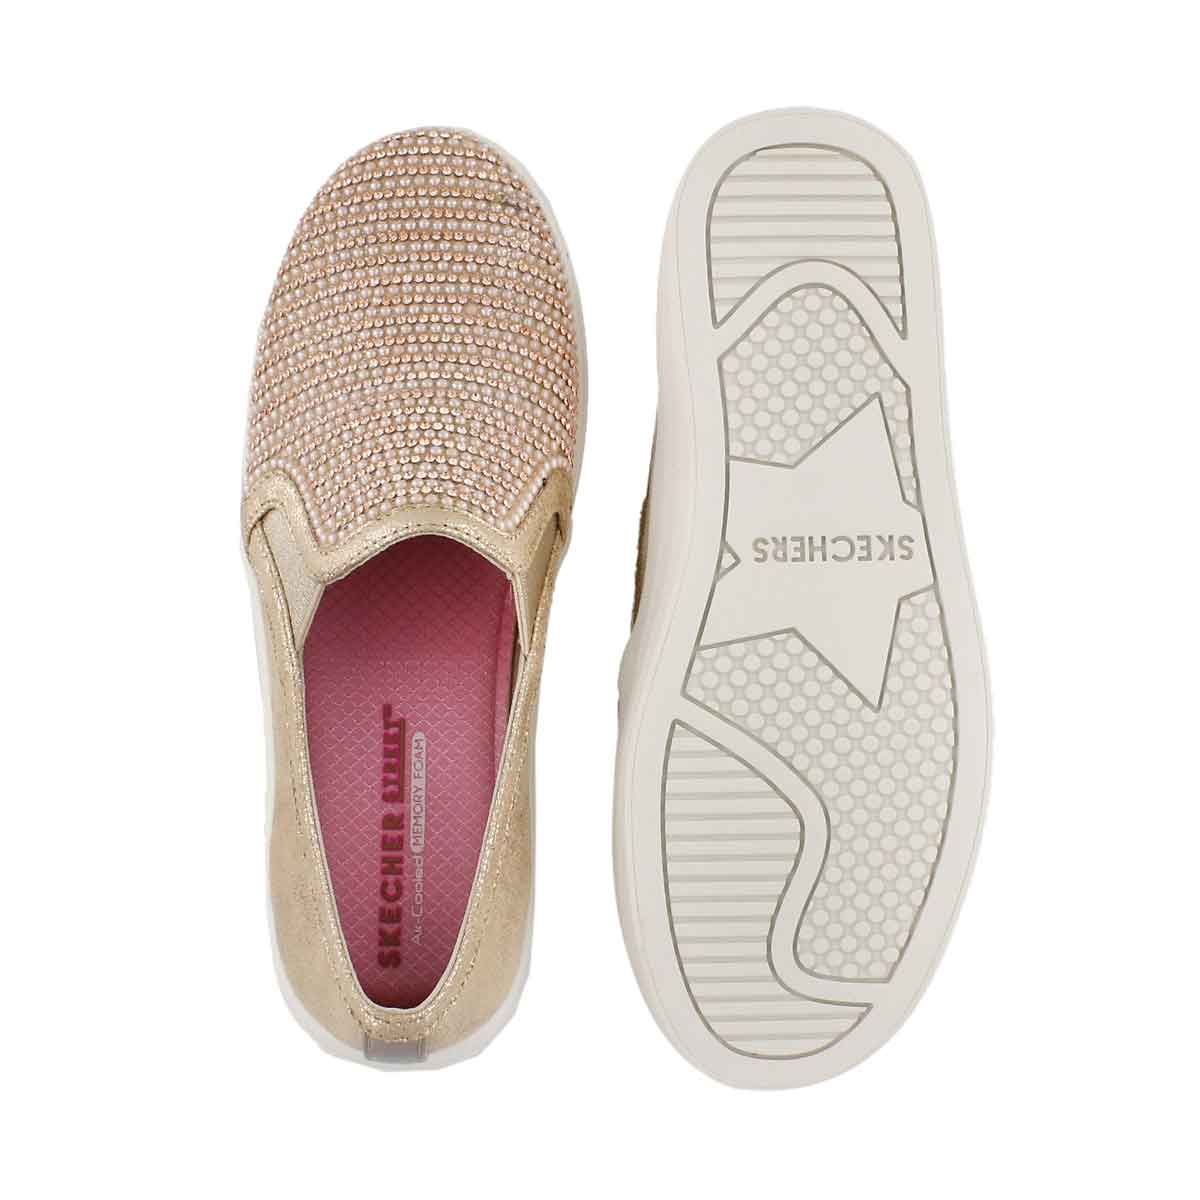 Grls DoubleUpShinyDancer rse gld slip on